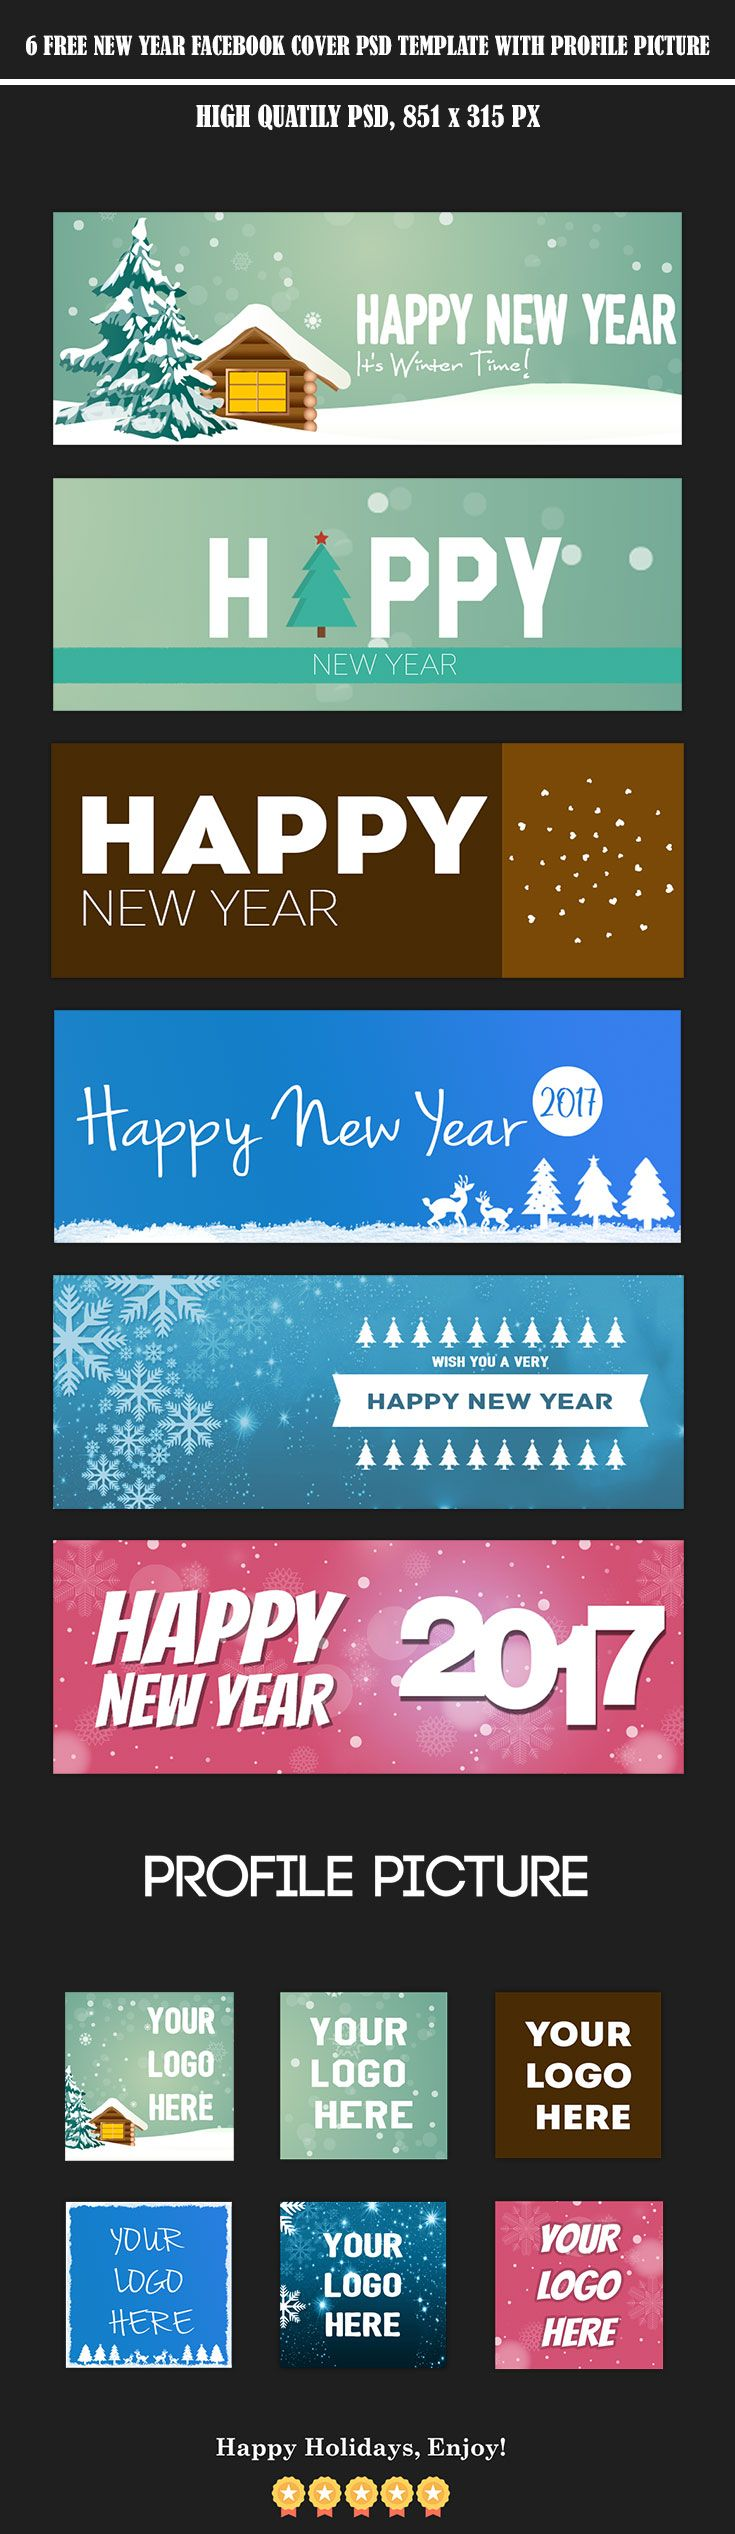 6 Free New Year Facebook Timeline Cover Template A Group Board